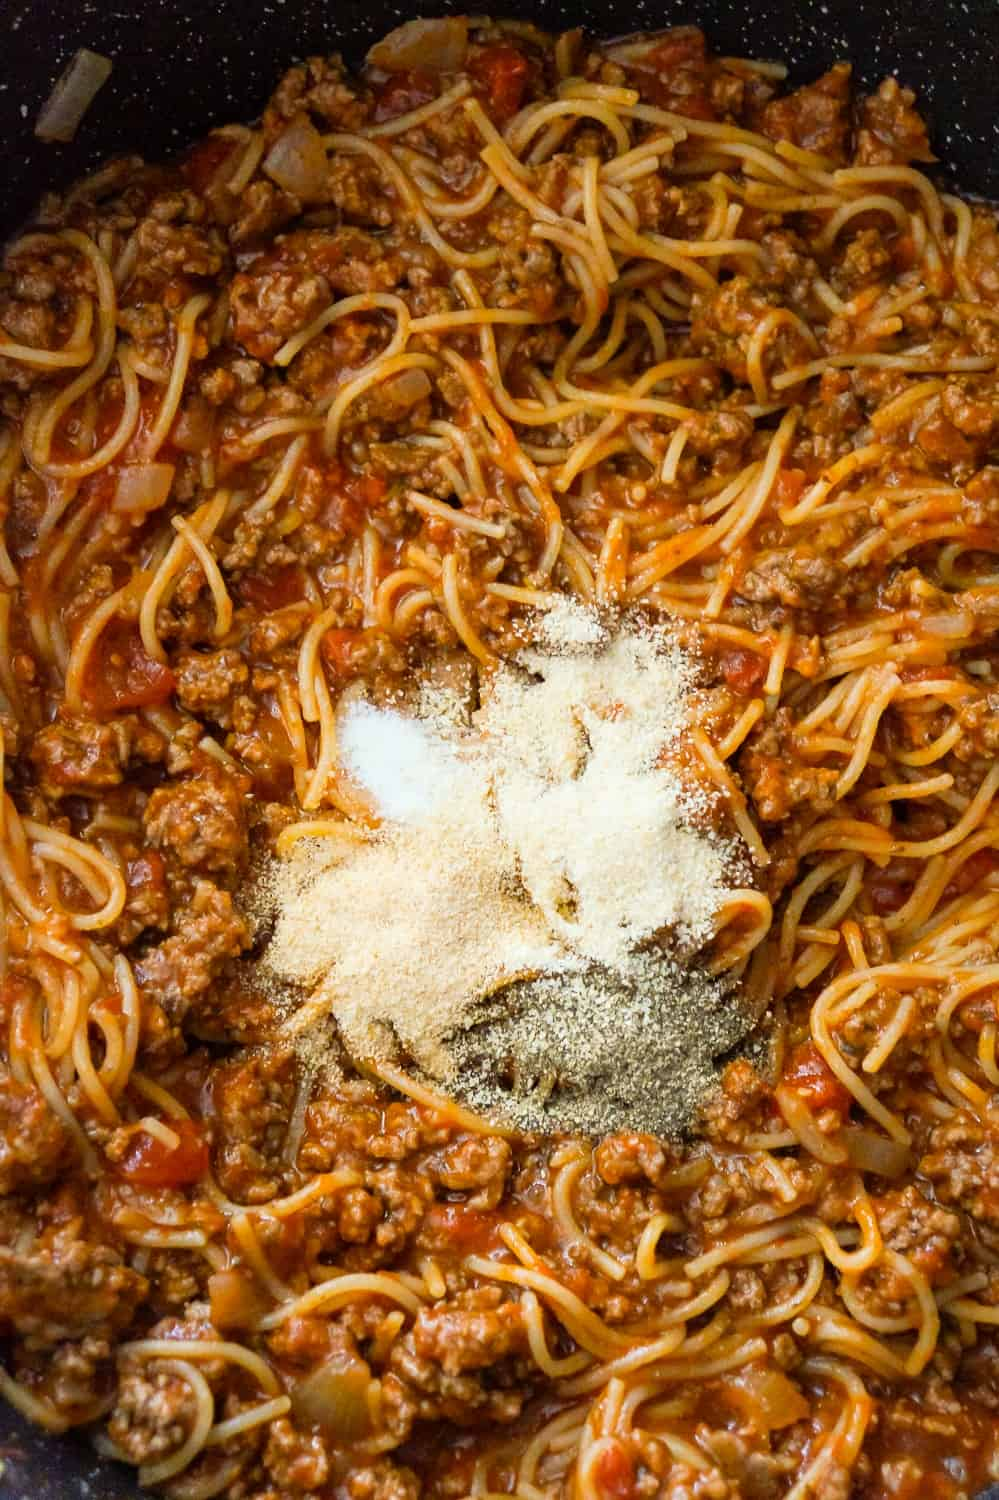 spices on top of spaghetti bolognese in a pan.